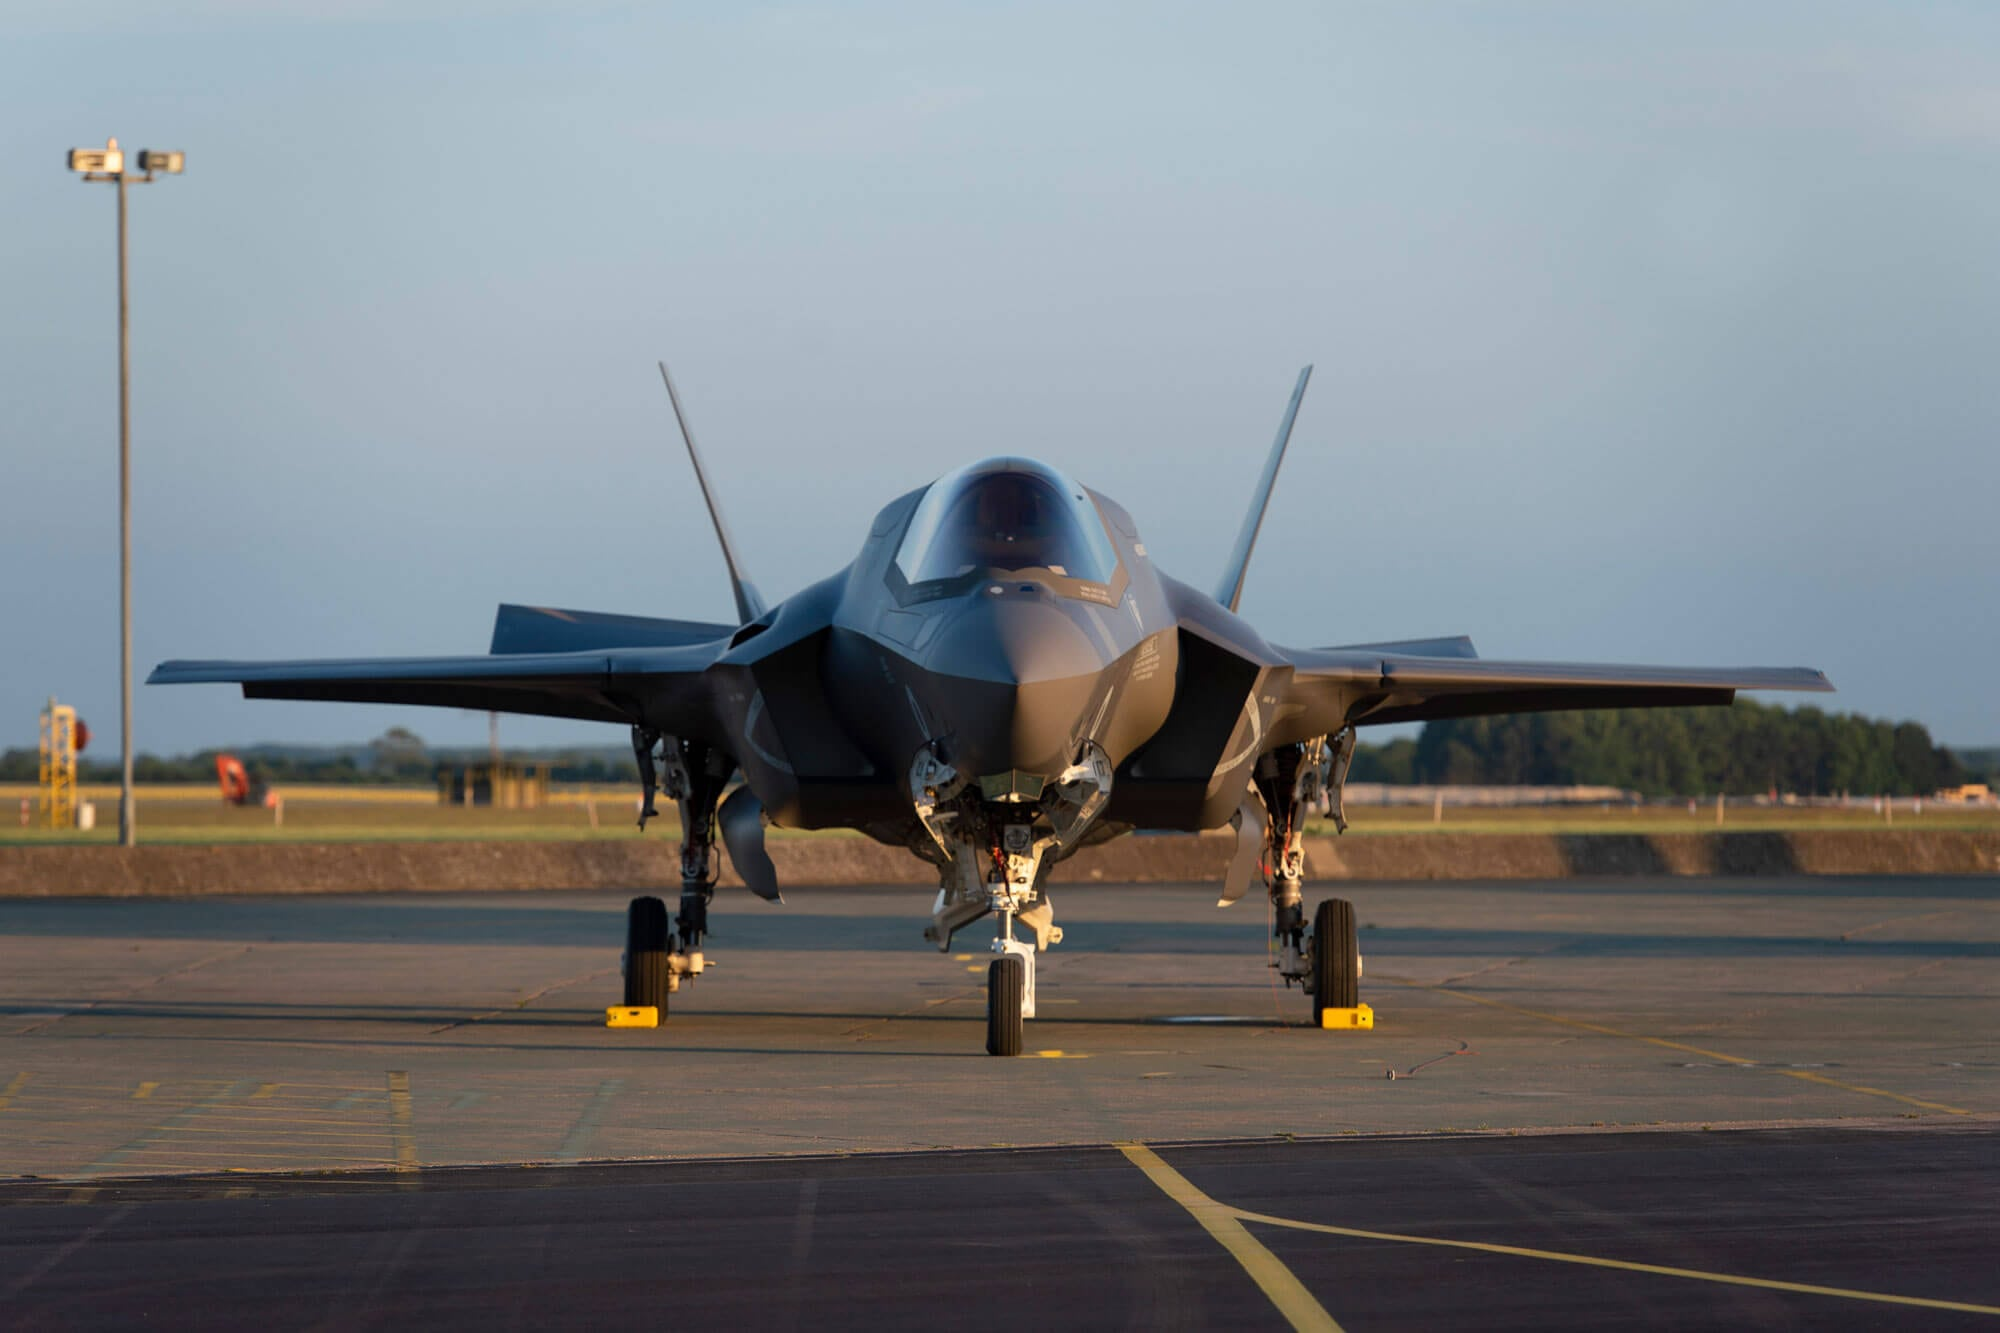 F-35 secured on ground